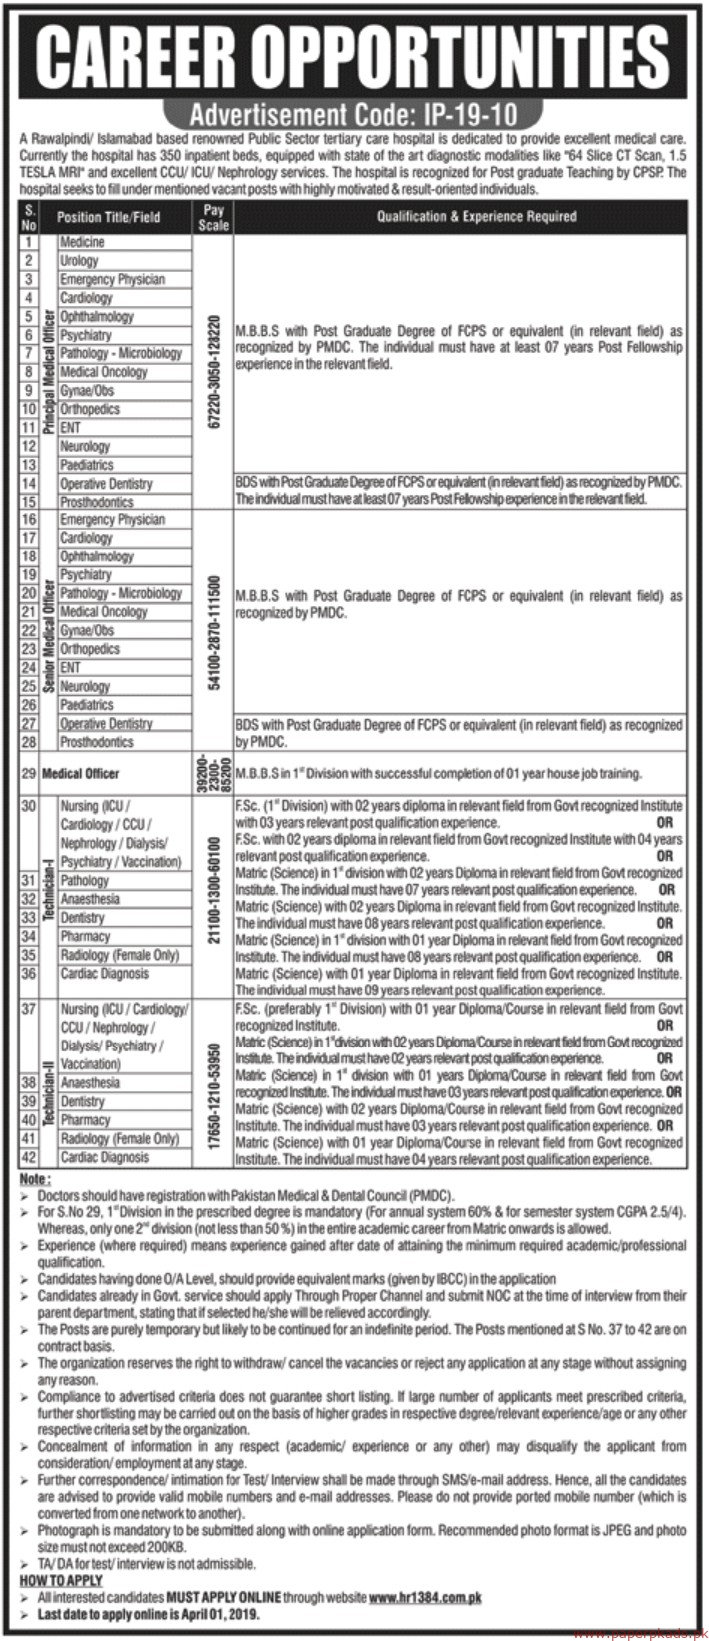 Public Sector Tertiary Care Hospital Jobs 2019 Latest